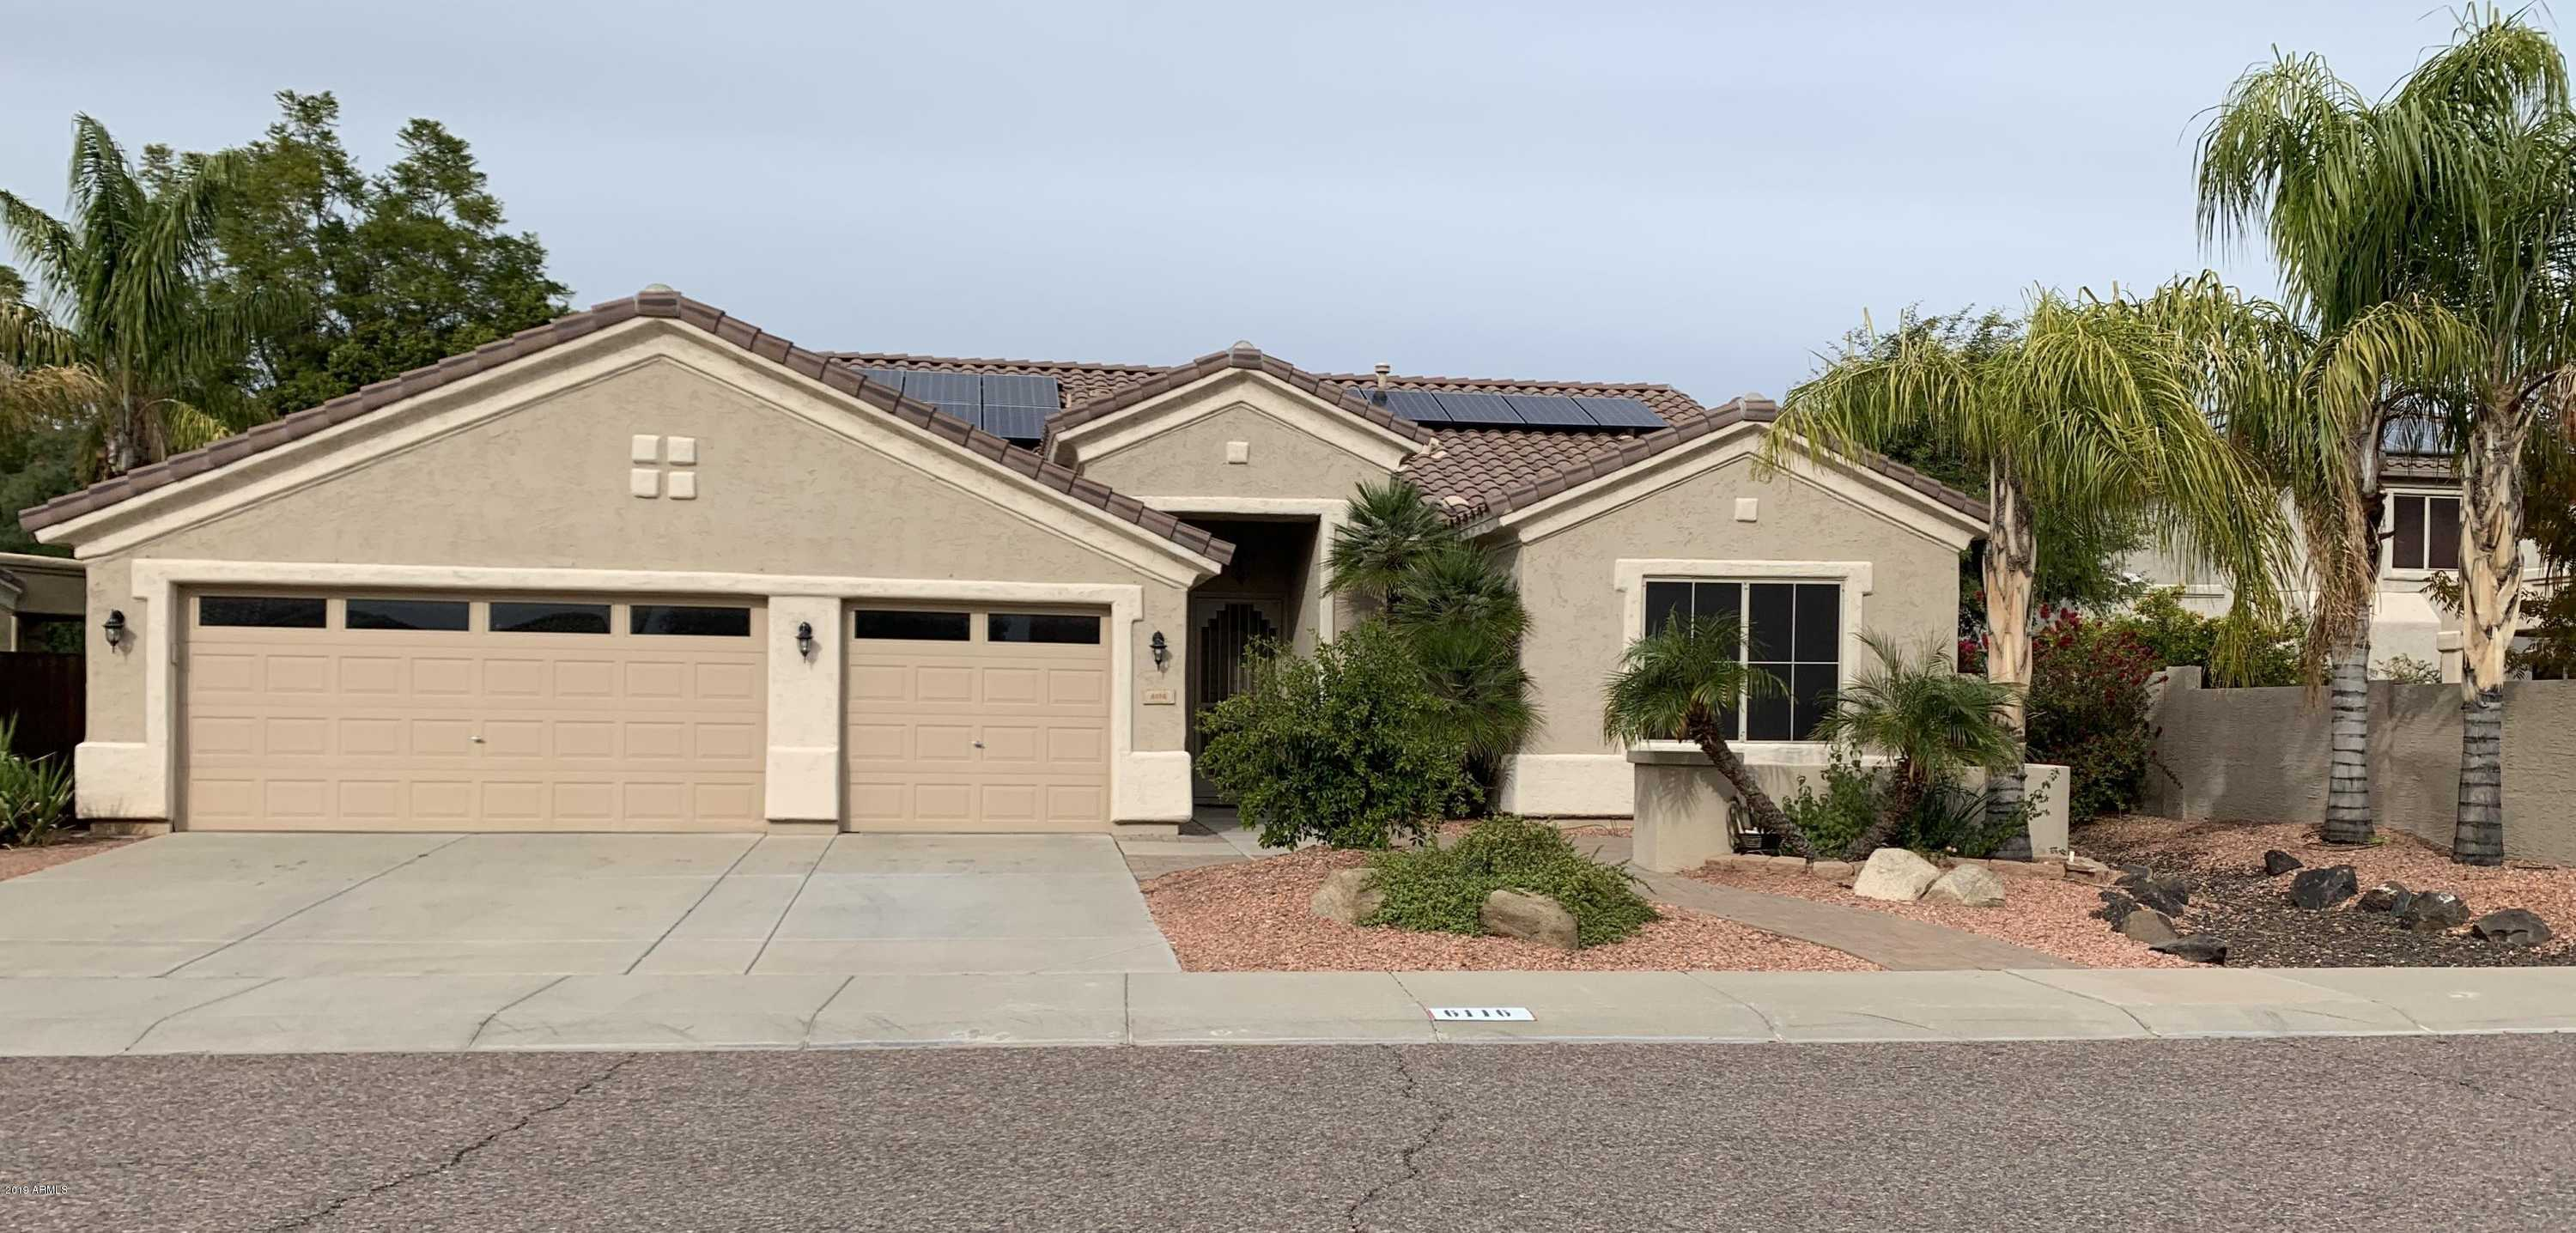 $369,900 - 3Br/2Ba - Home for Sale in Highlands At Arrowhead Ranch 3, Glendale